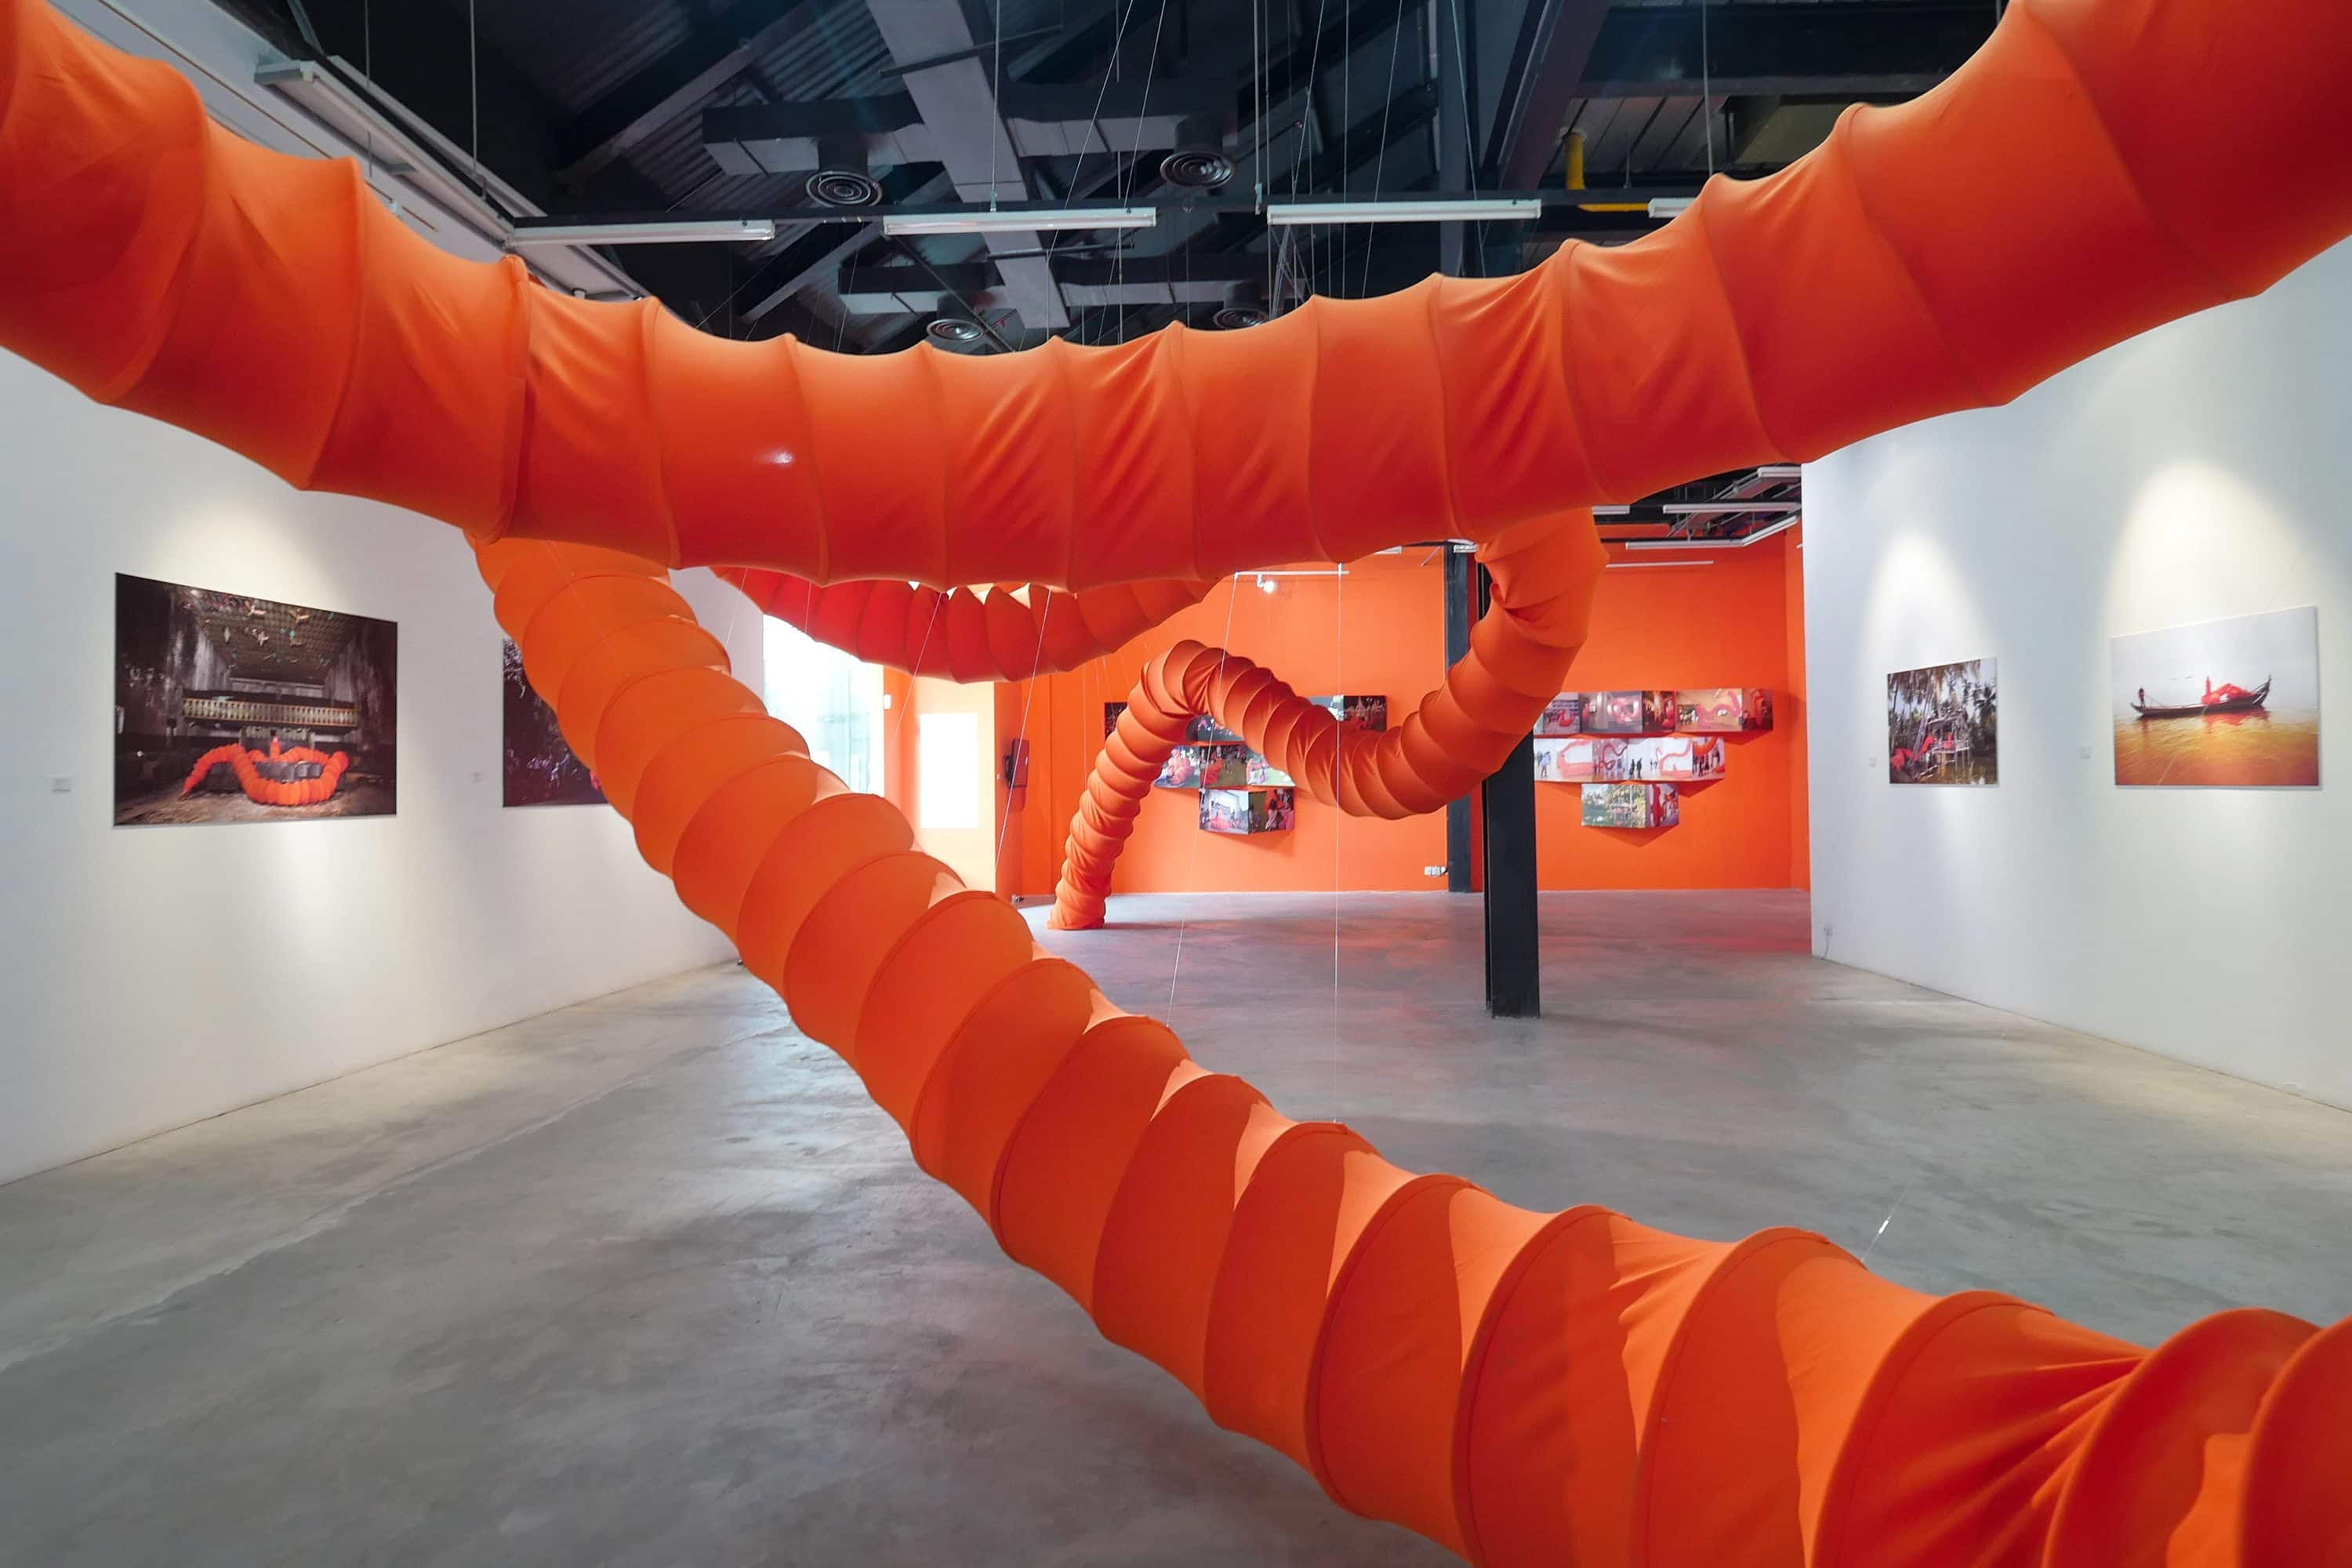 Exhibition at Wei Ling Gallery, Kuala Lumpur